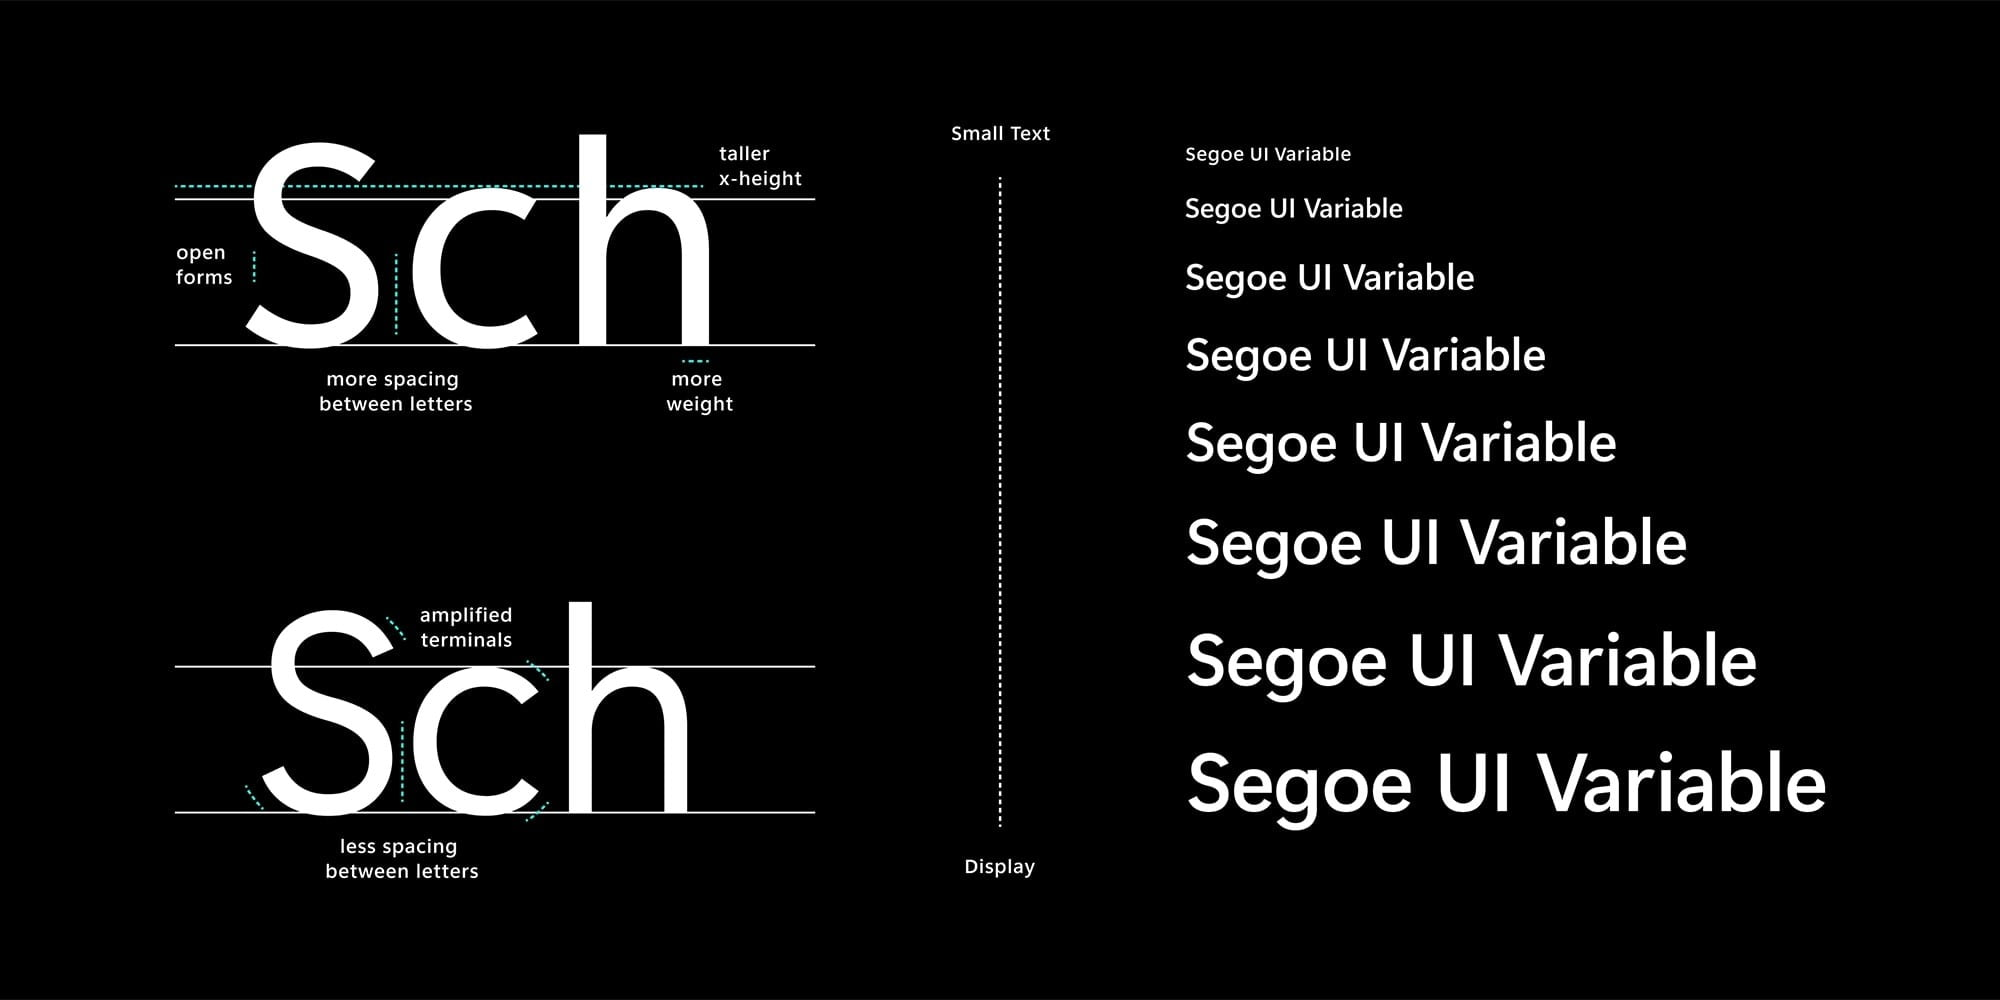 windows 10 new font icons redesign segoe variable